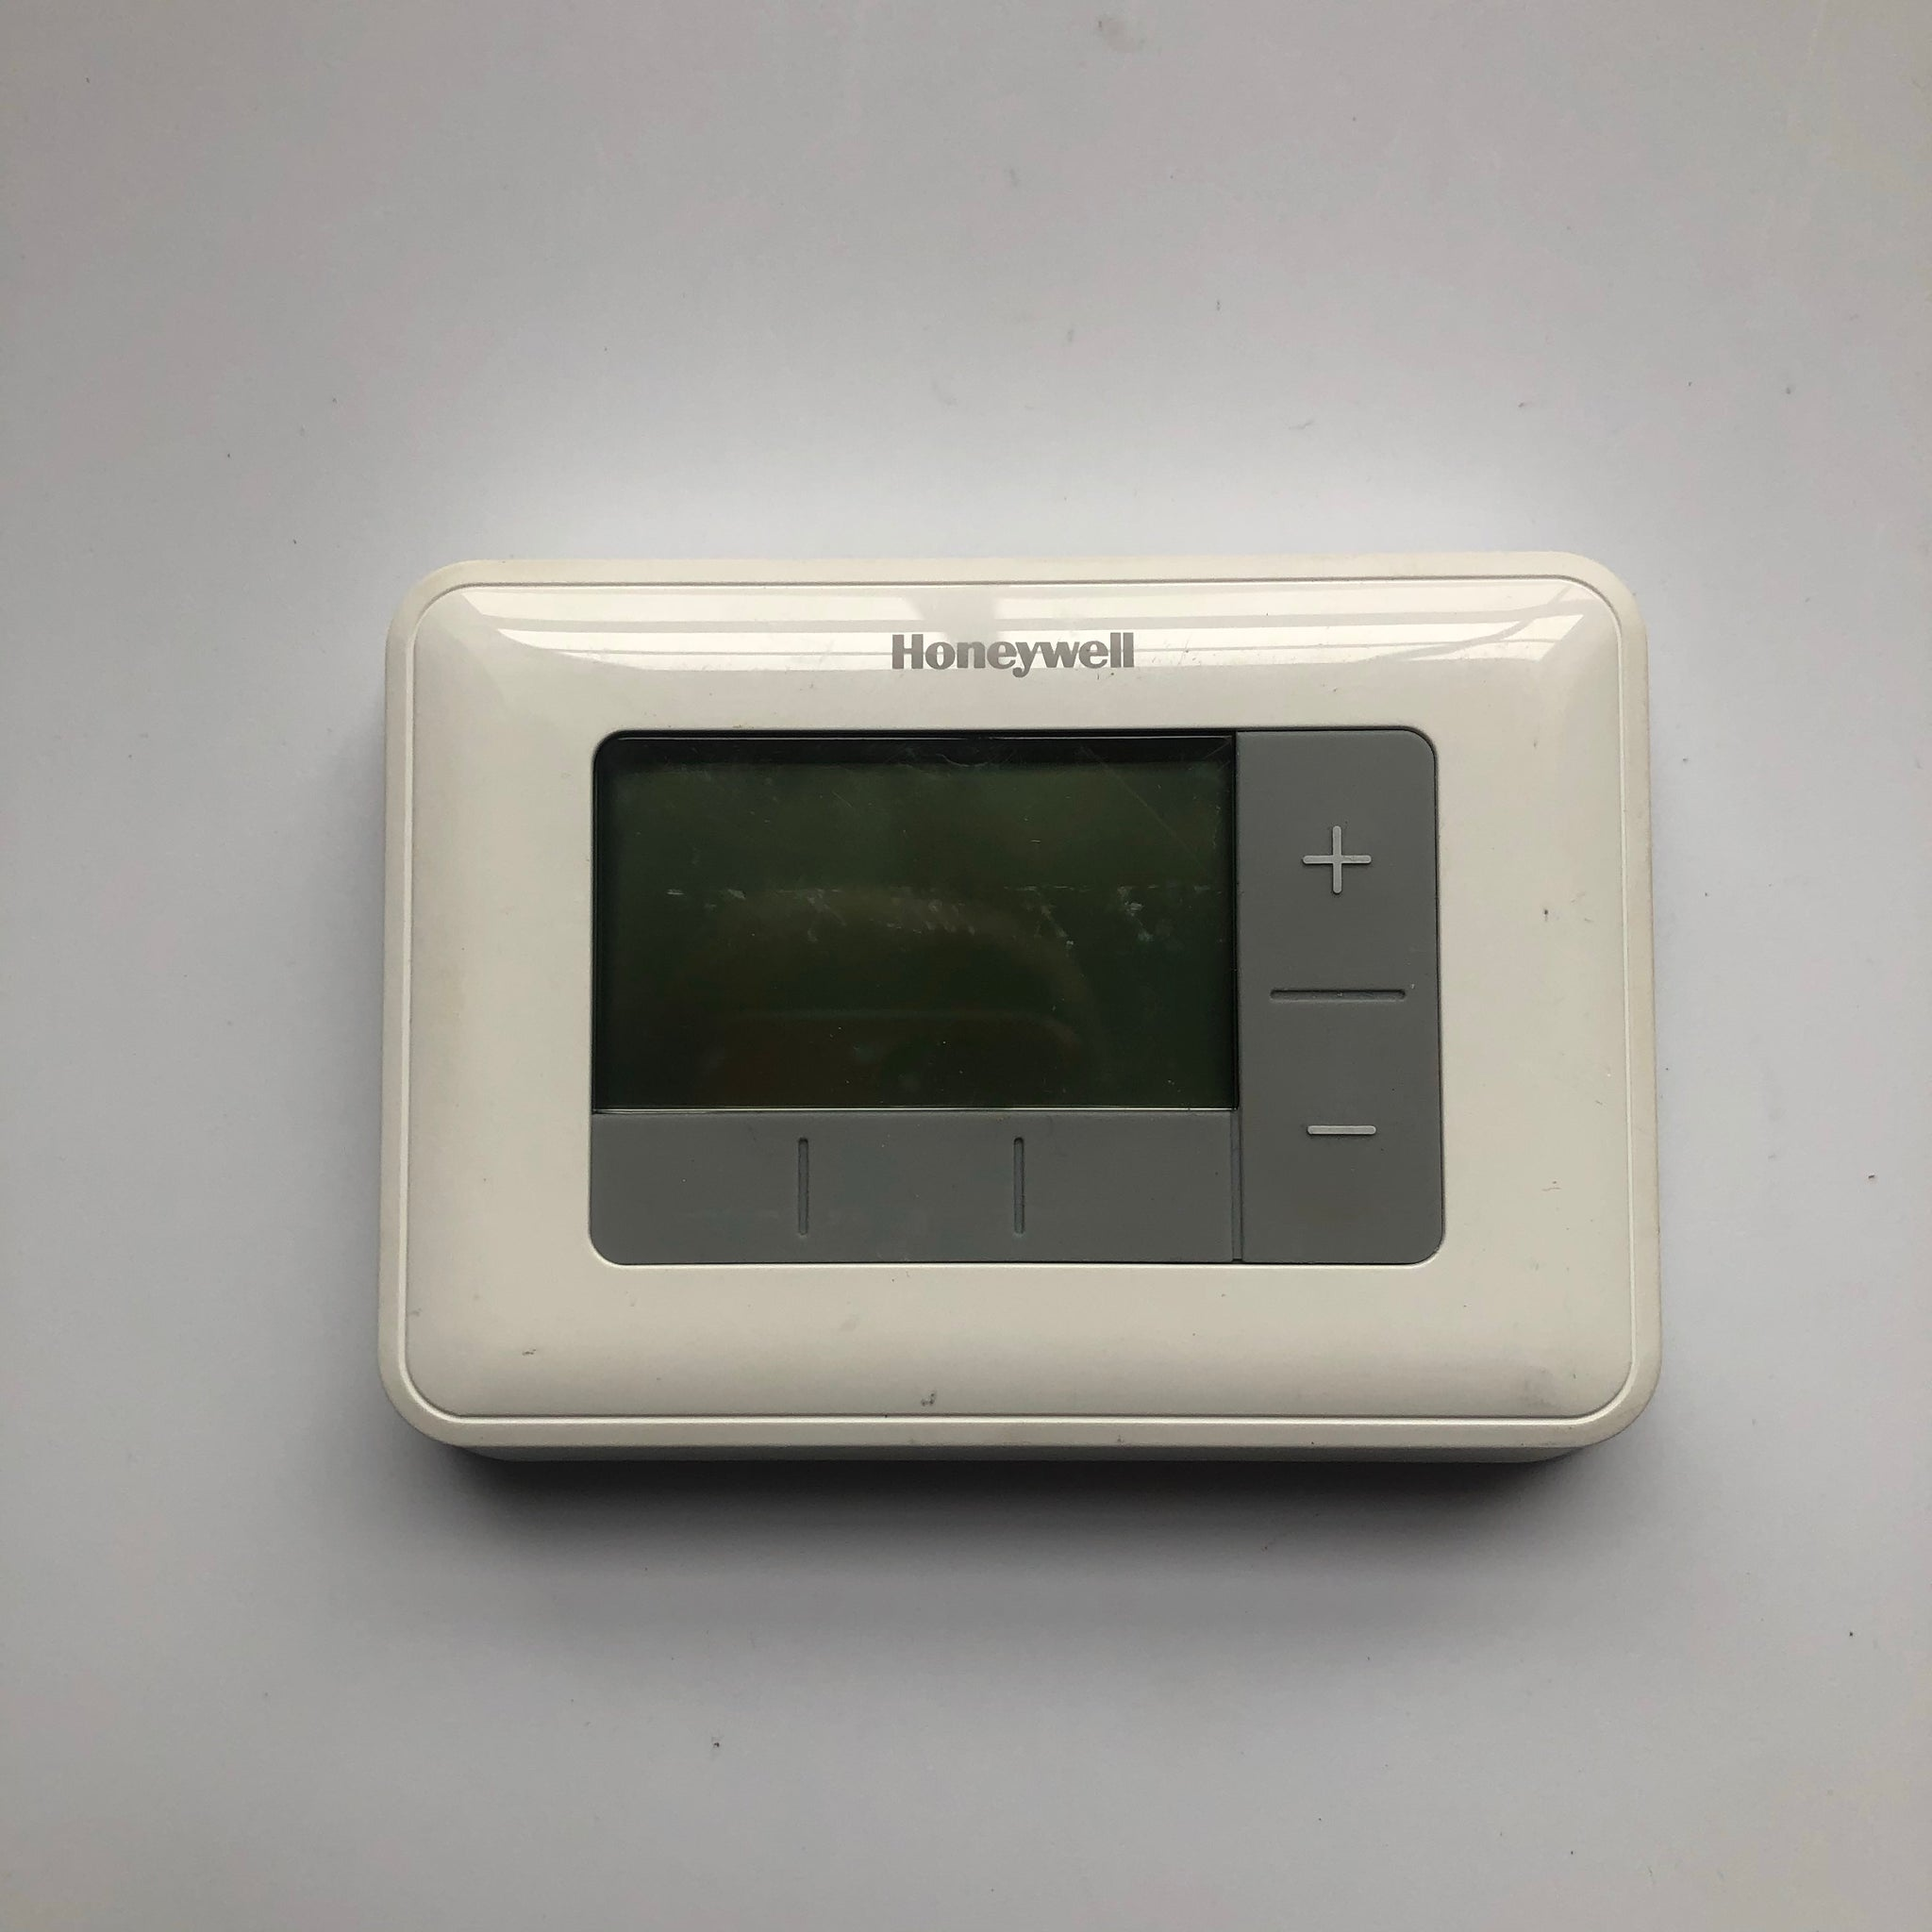 Honeywell Thermostat RTH6360D1002